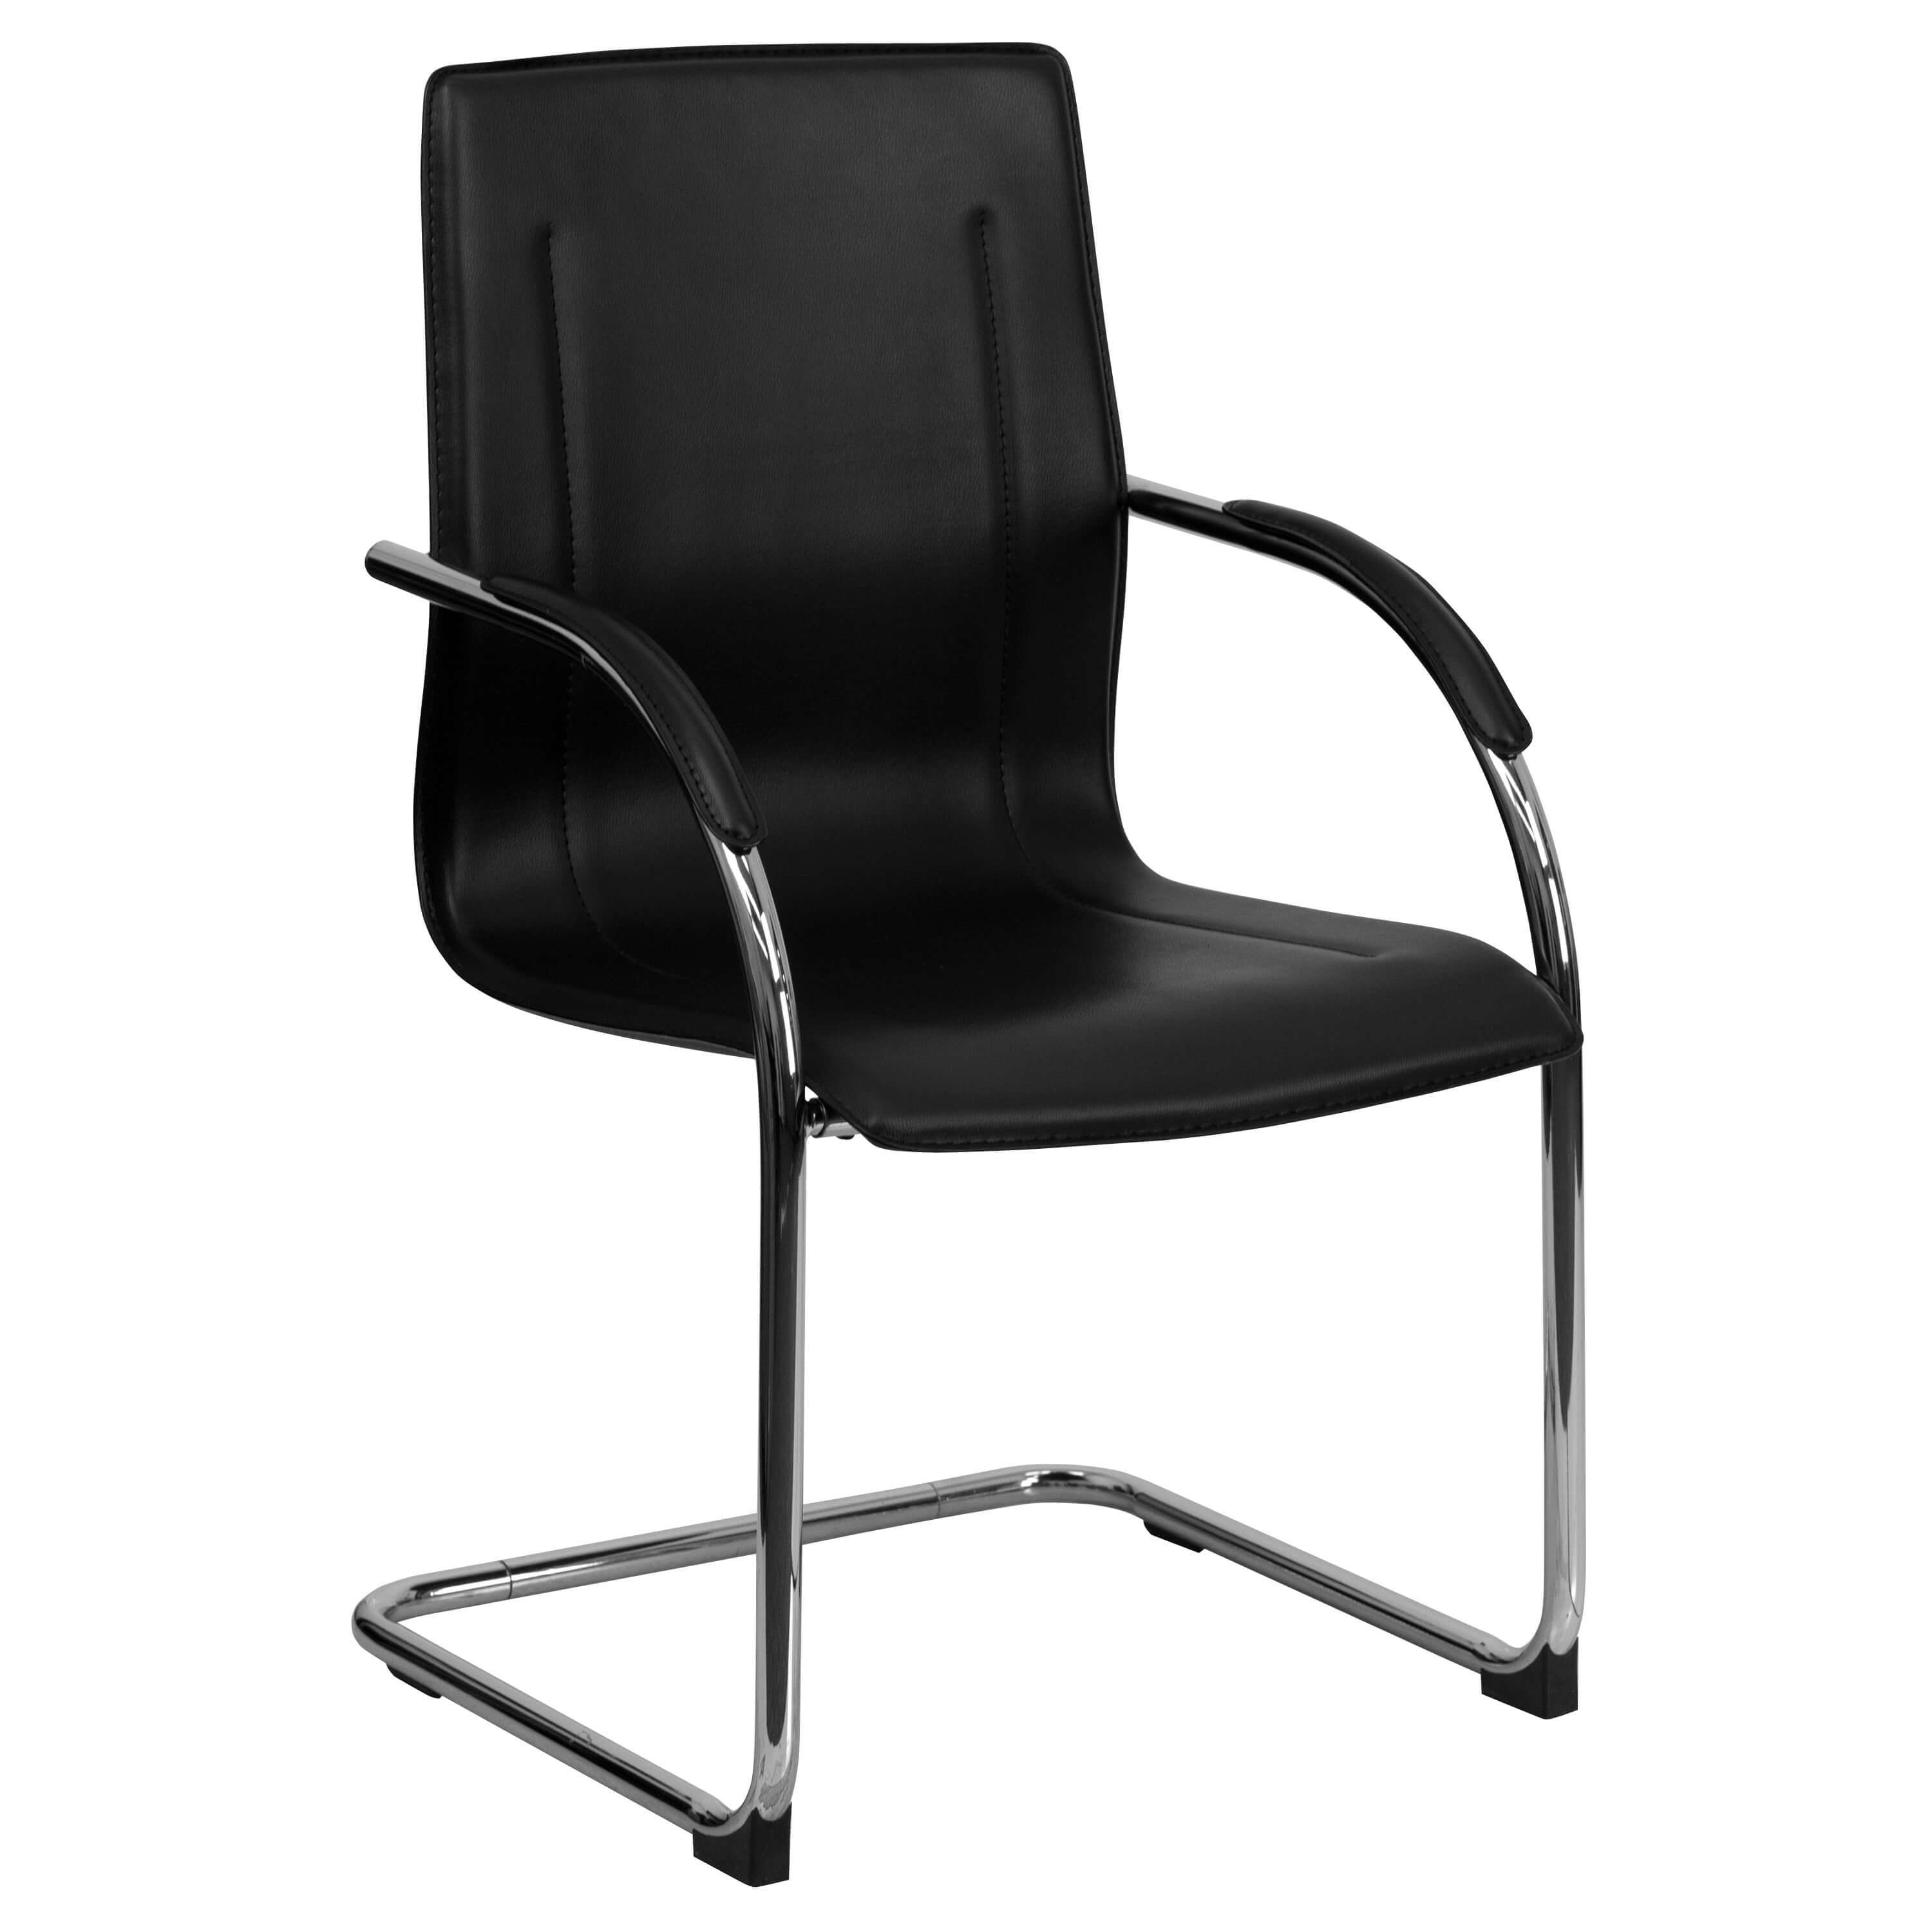 Wadley Office Reception Chairs